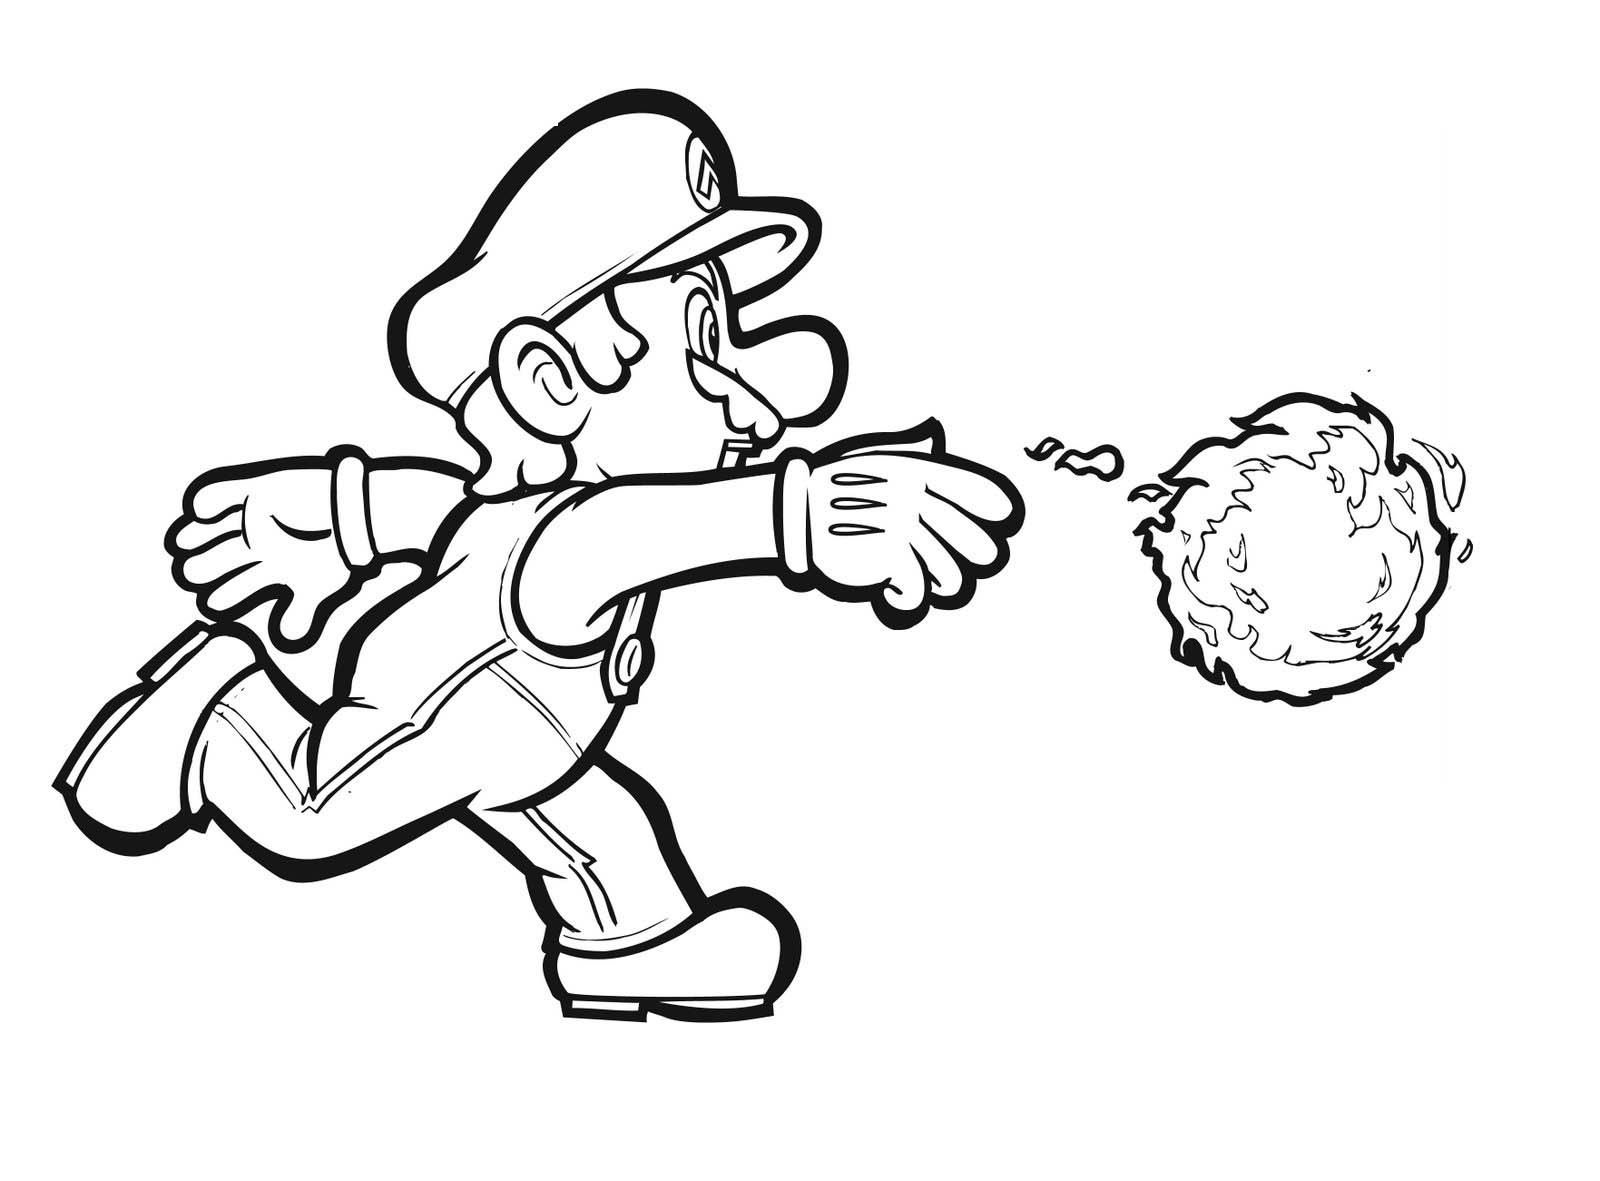 mario brothers coloring pages free - photo#14